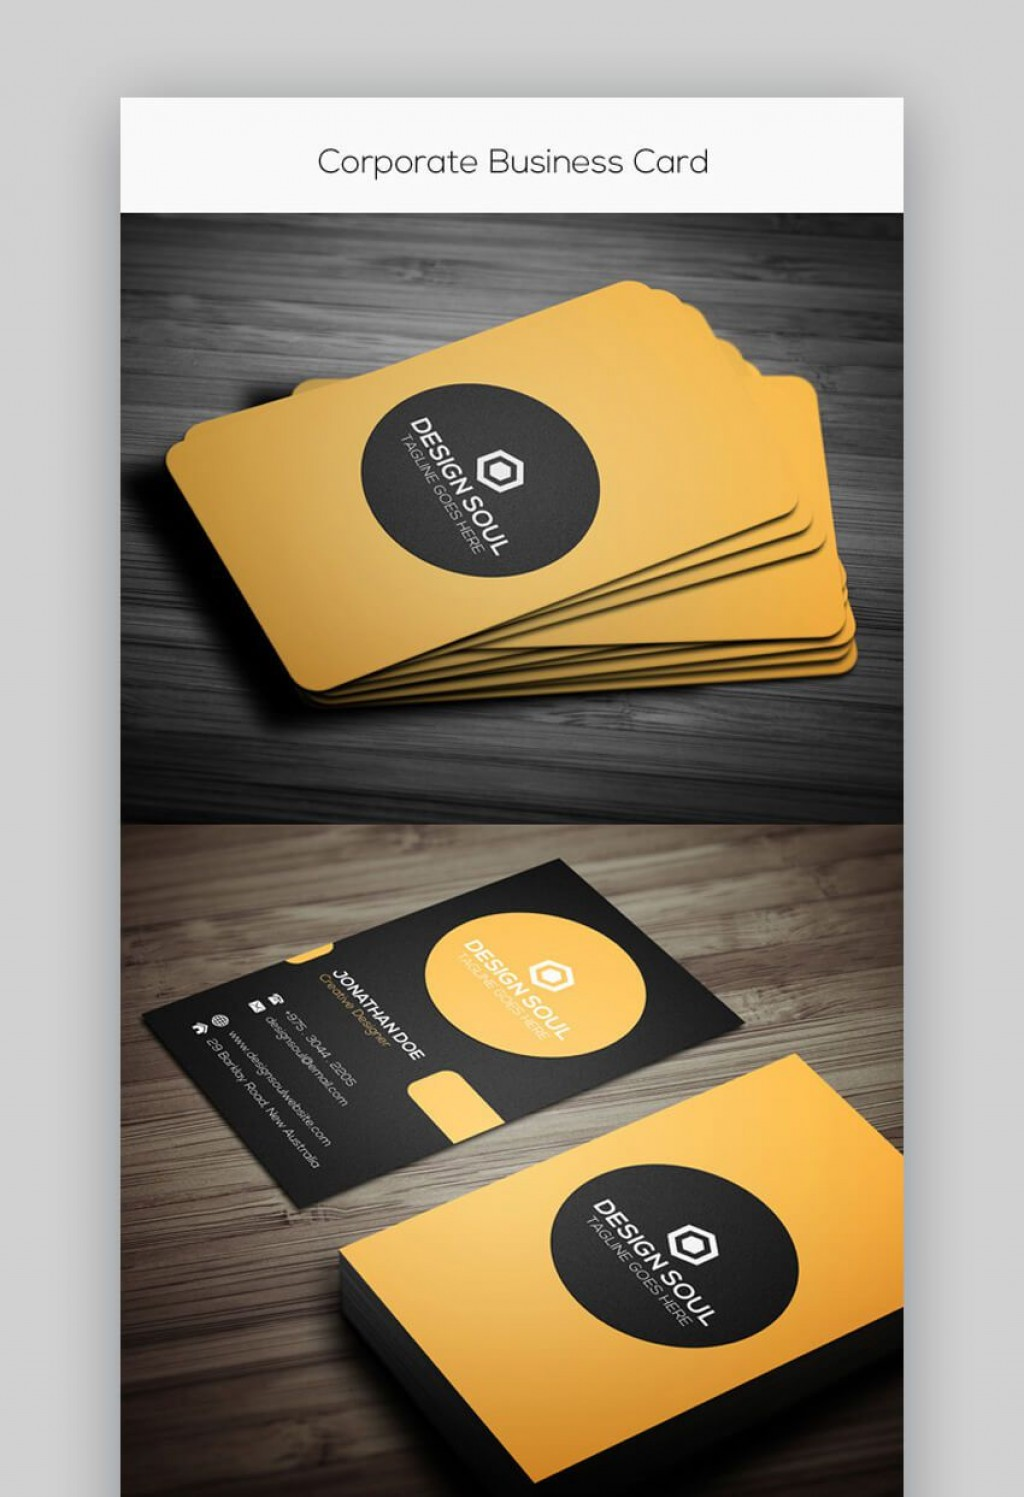 000 Best Simple Visiting Card Design Psd Idea  Minimalist Busines Template Free File Download In PhotoshopLarge